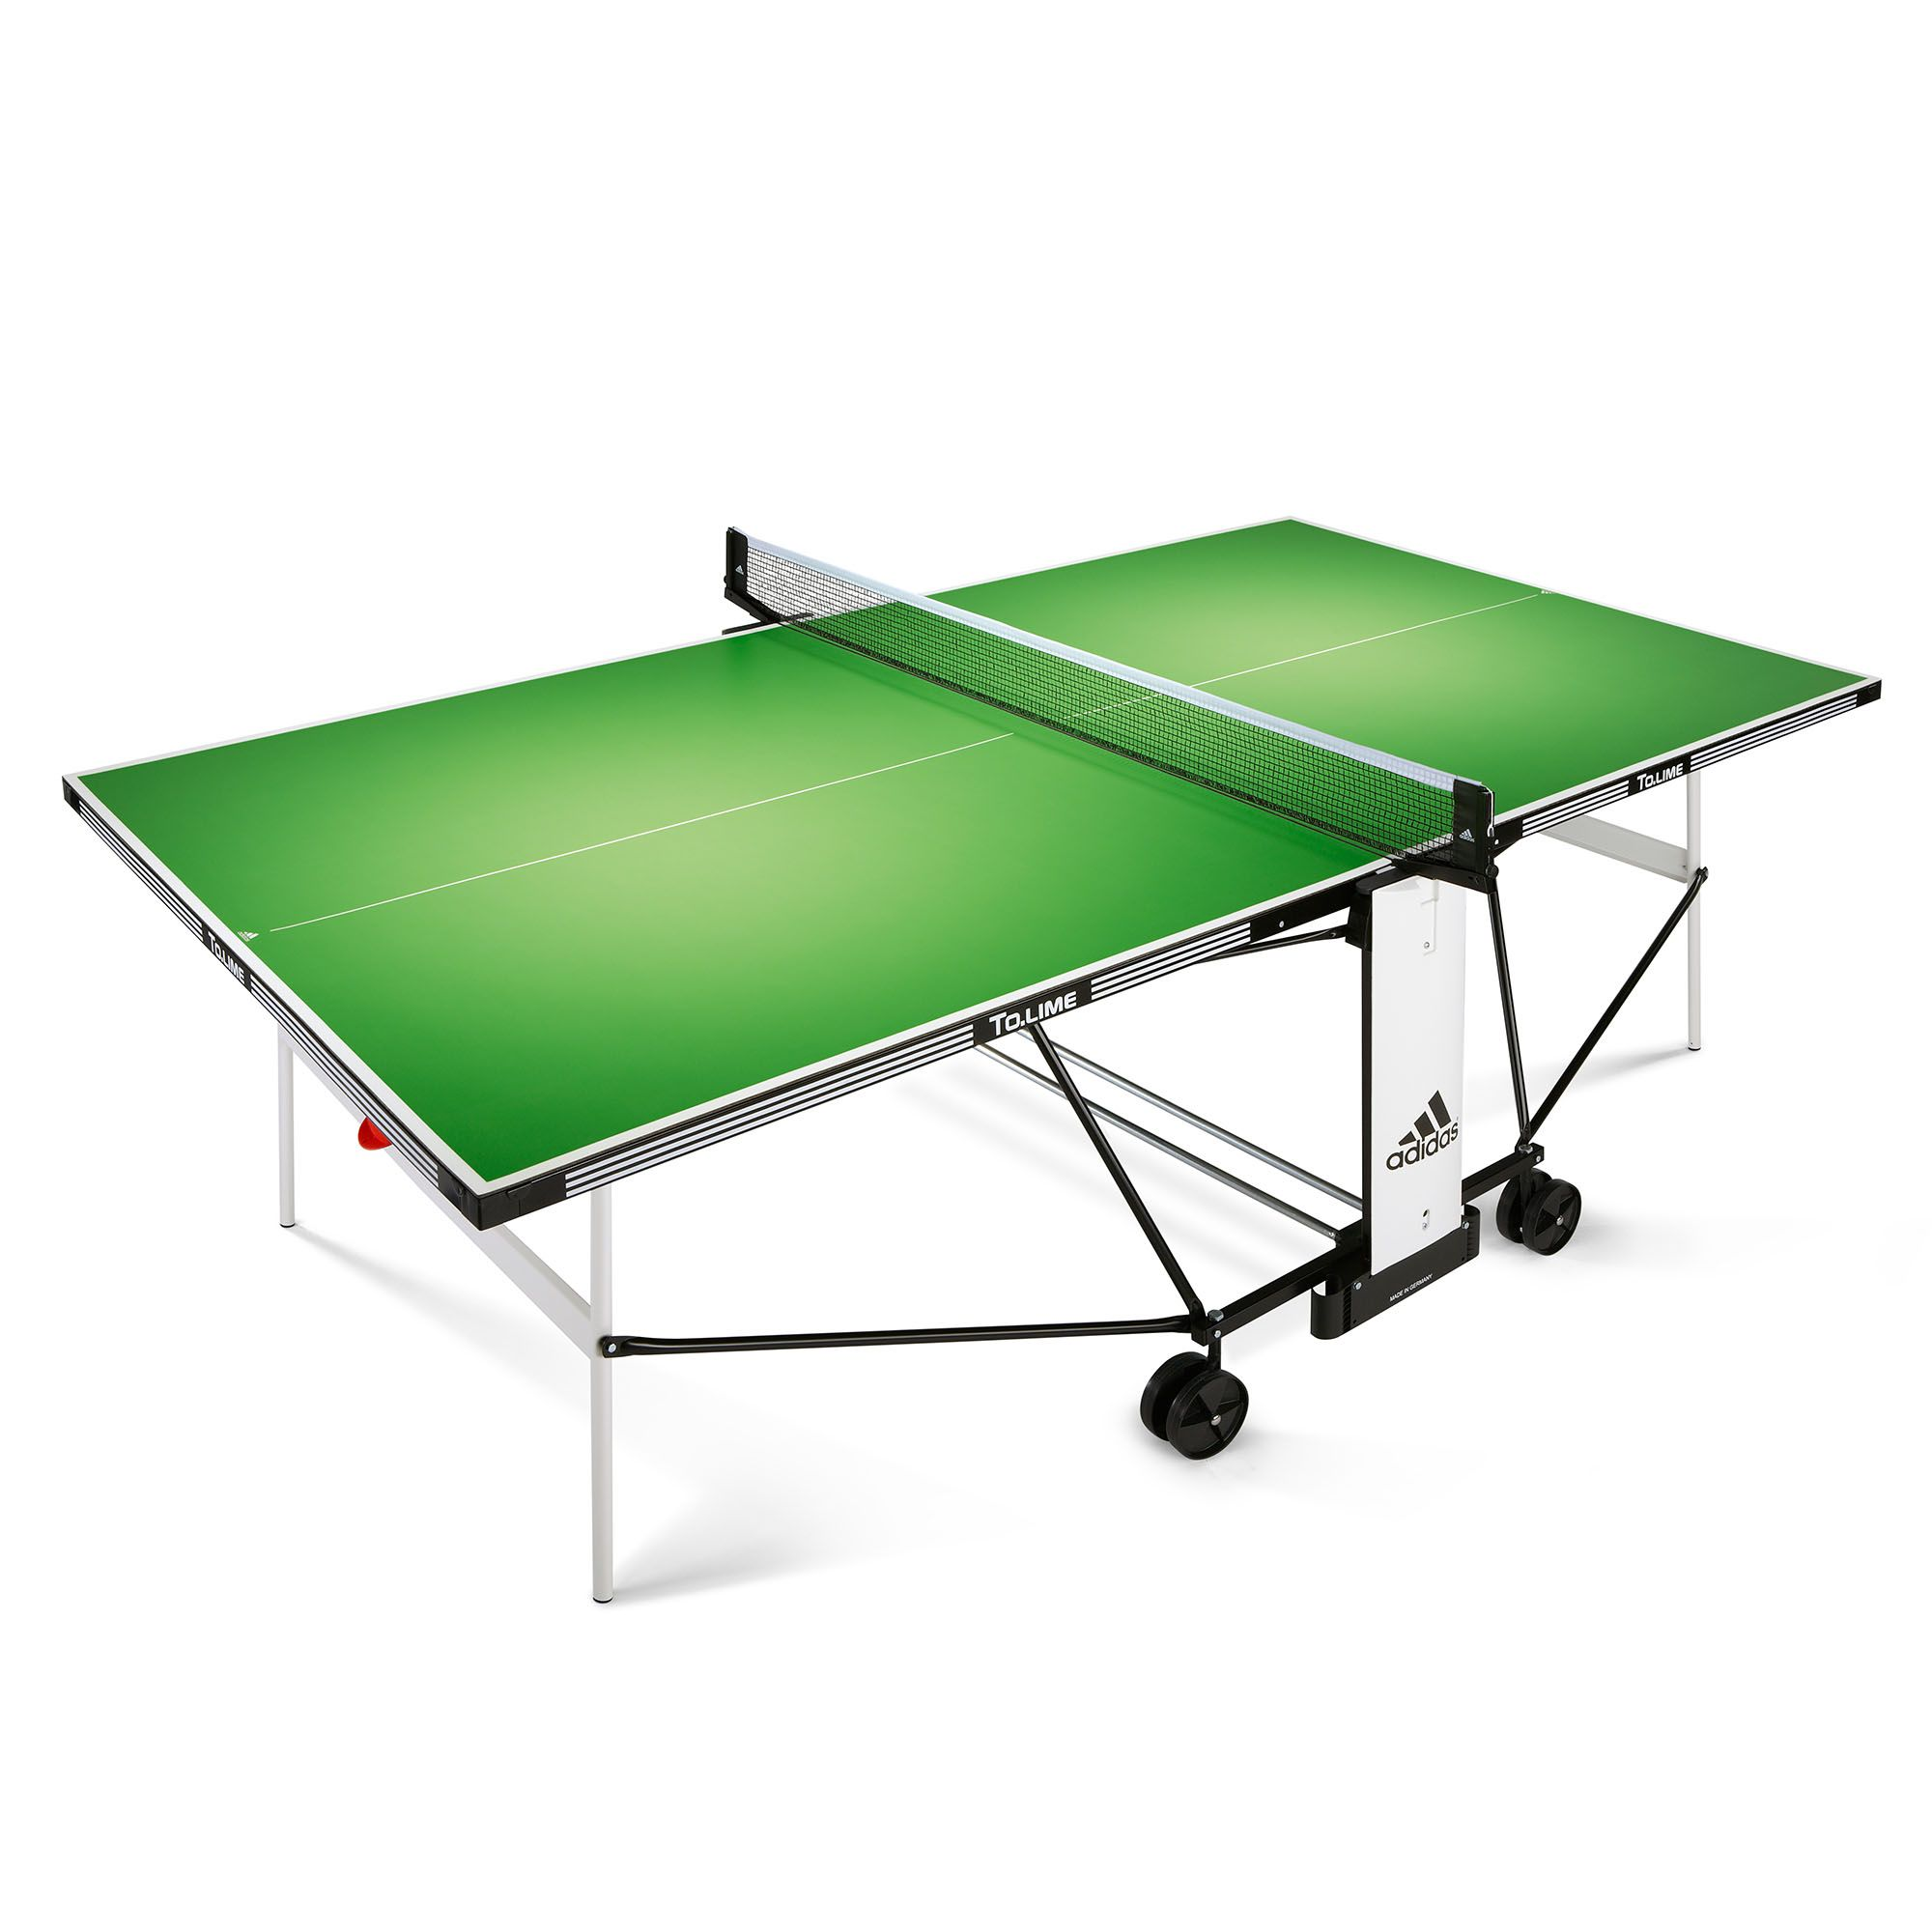 adidas to lime outdoor table tennis table. Black Bedroom Furniture Sets. Home Design Ideas